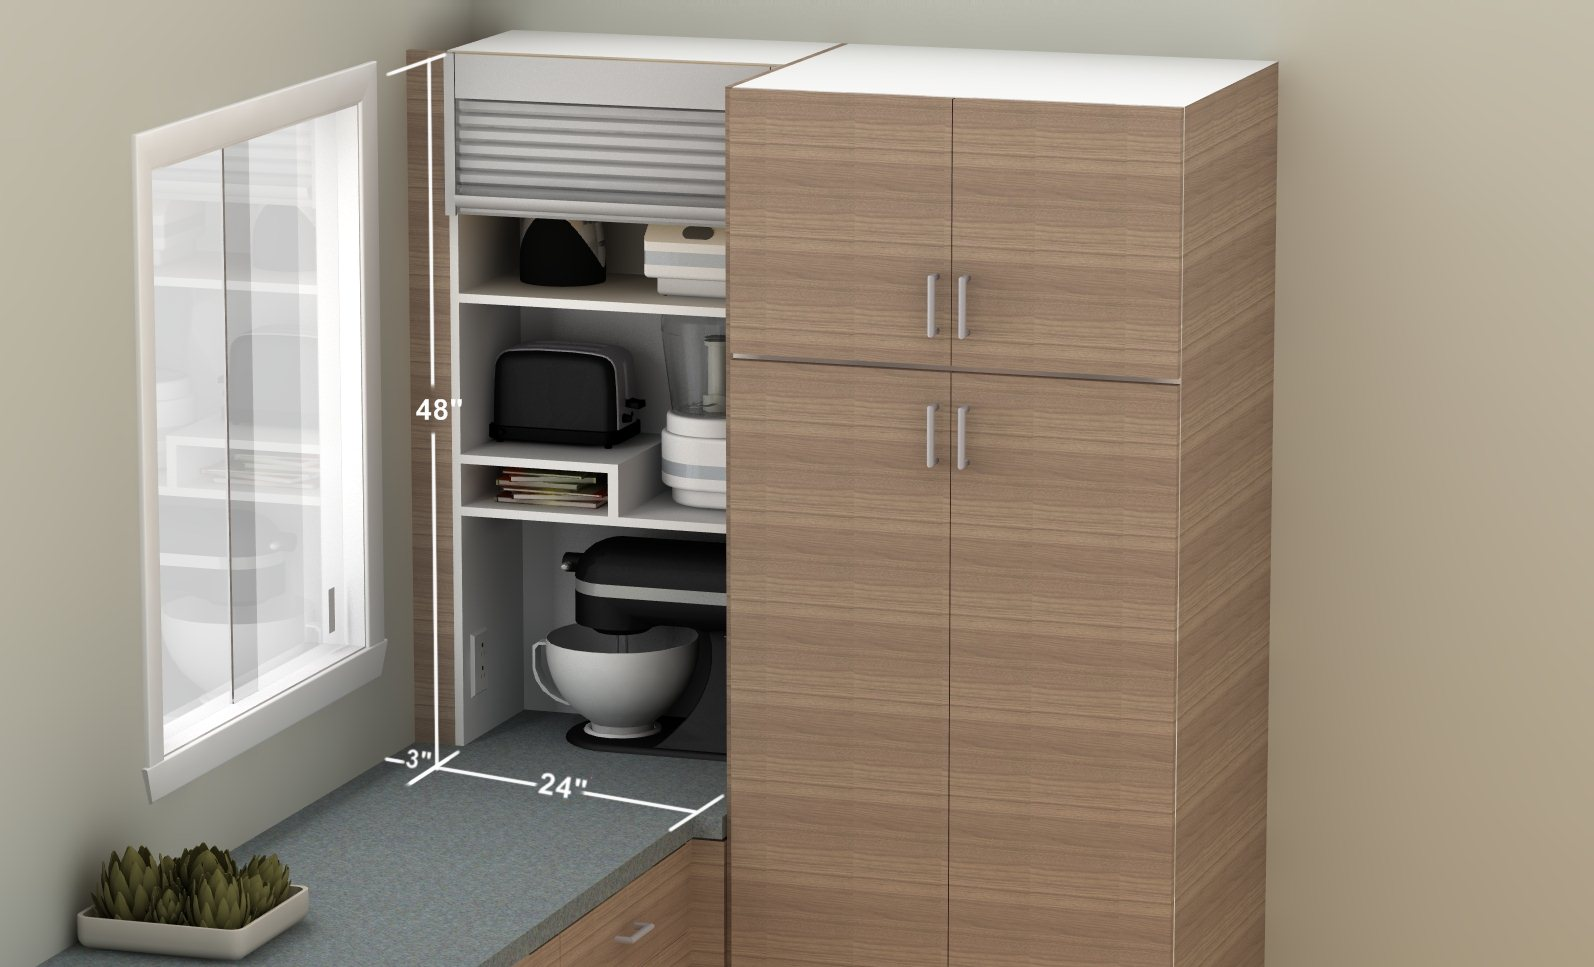 How to hide smaller appliances in your ikea kitchen for Ikea storage cabinets kitchen